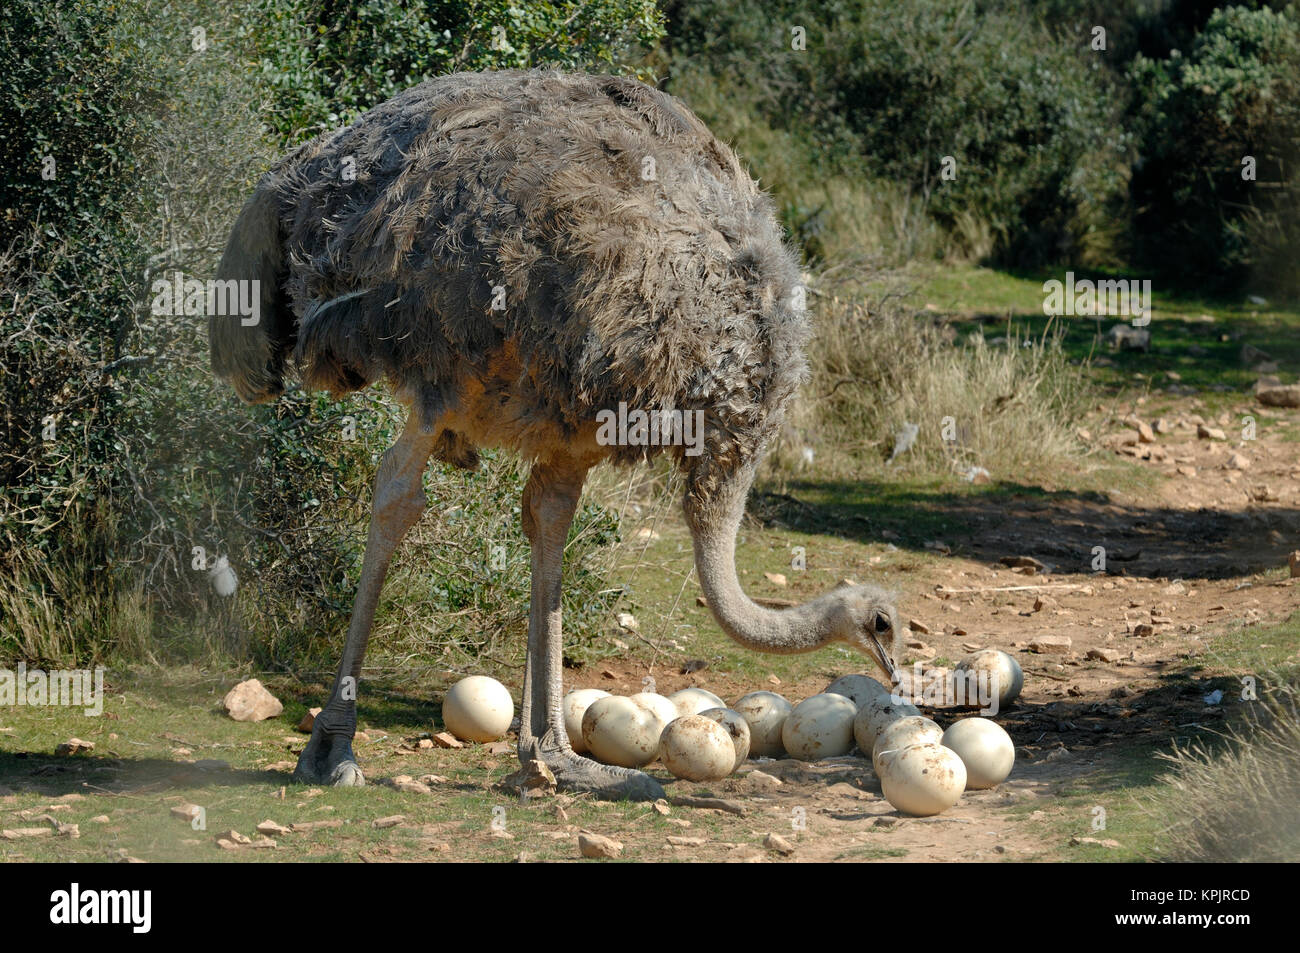 Female Ostrich or Common Ostrich, Struthio camelus, & Clutch of Eggs - Stock Image